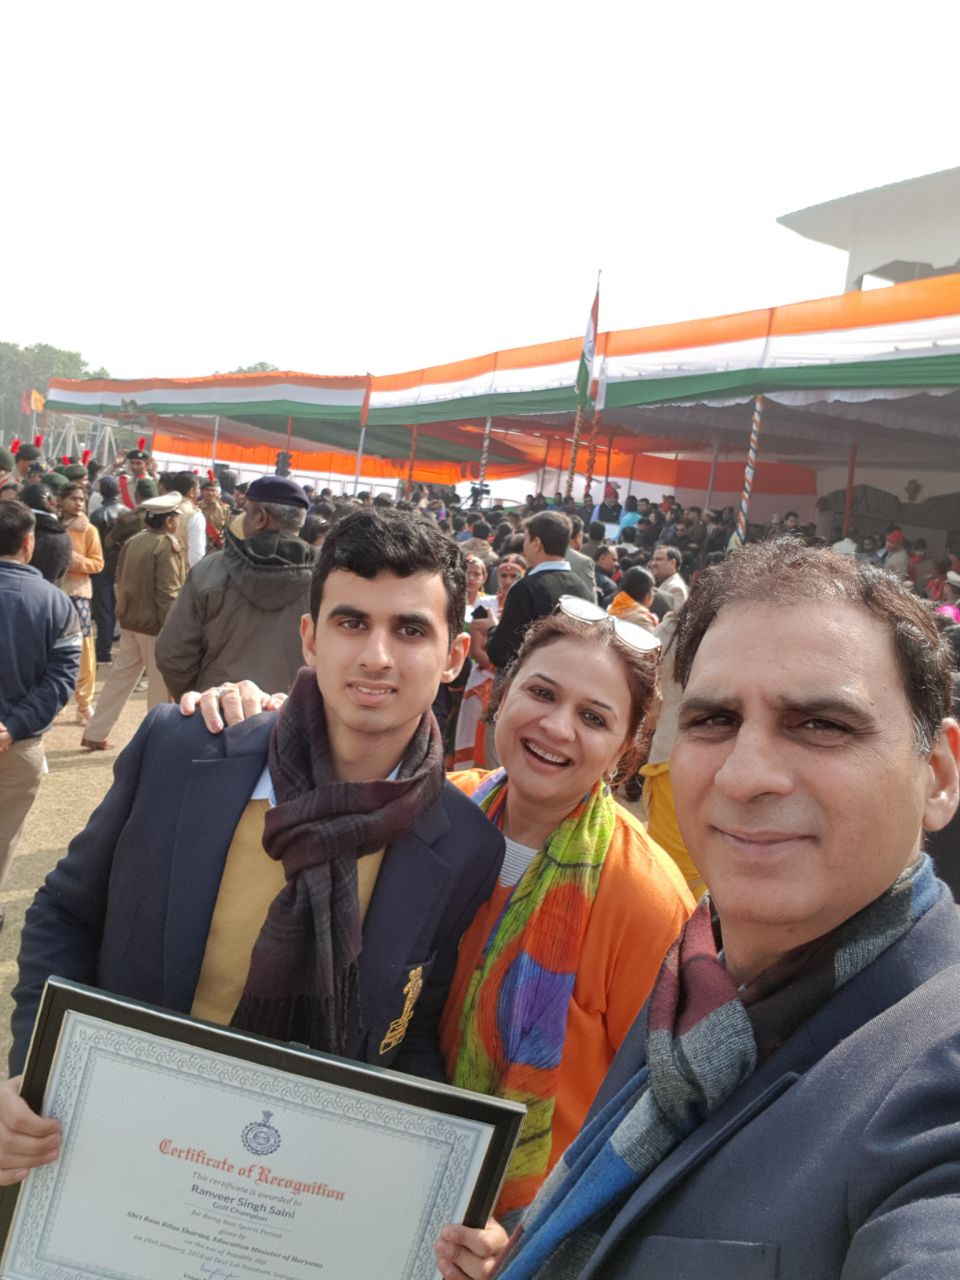 Gallery archives ranveer saini bhim awardee ranveer saini felicitated on republic day celebrations by the education minister altavistaventures Choice Image